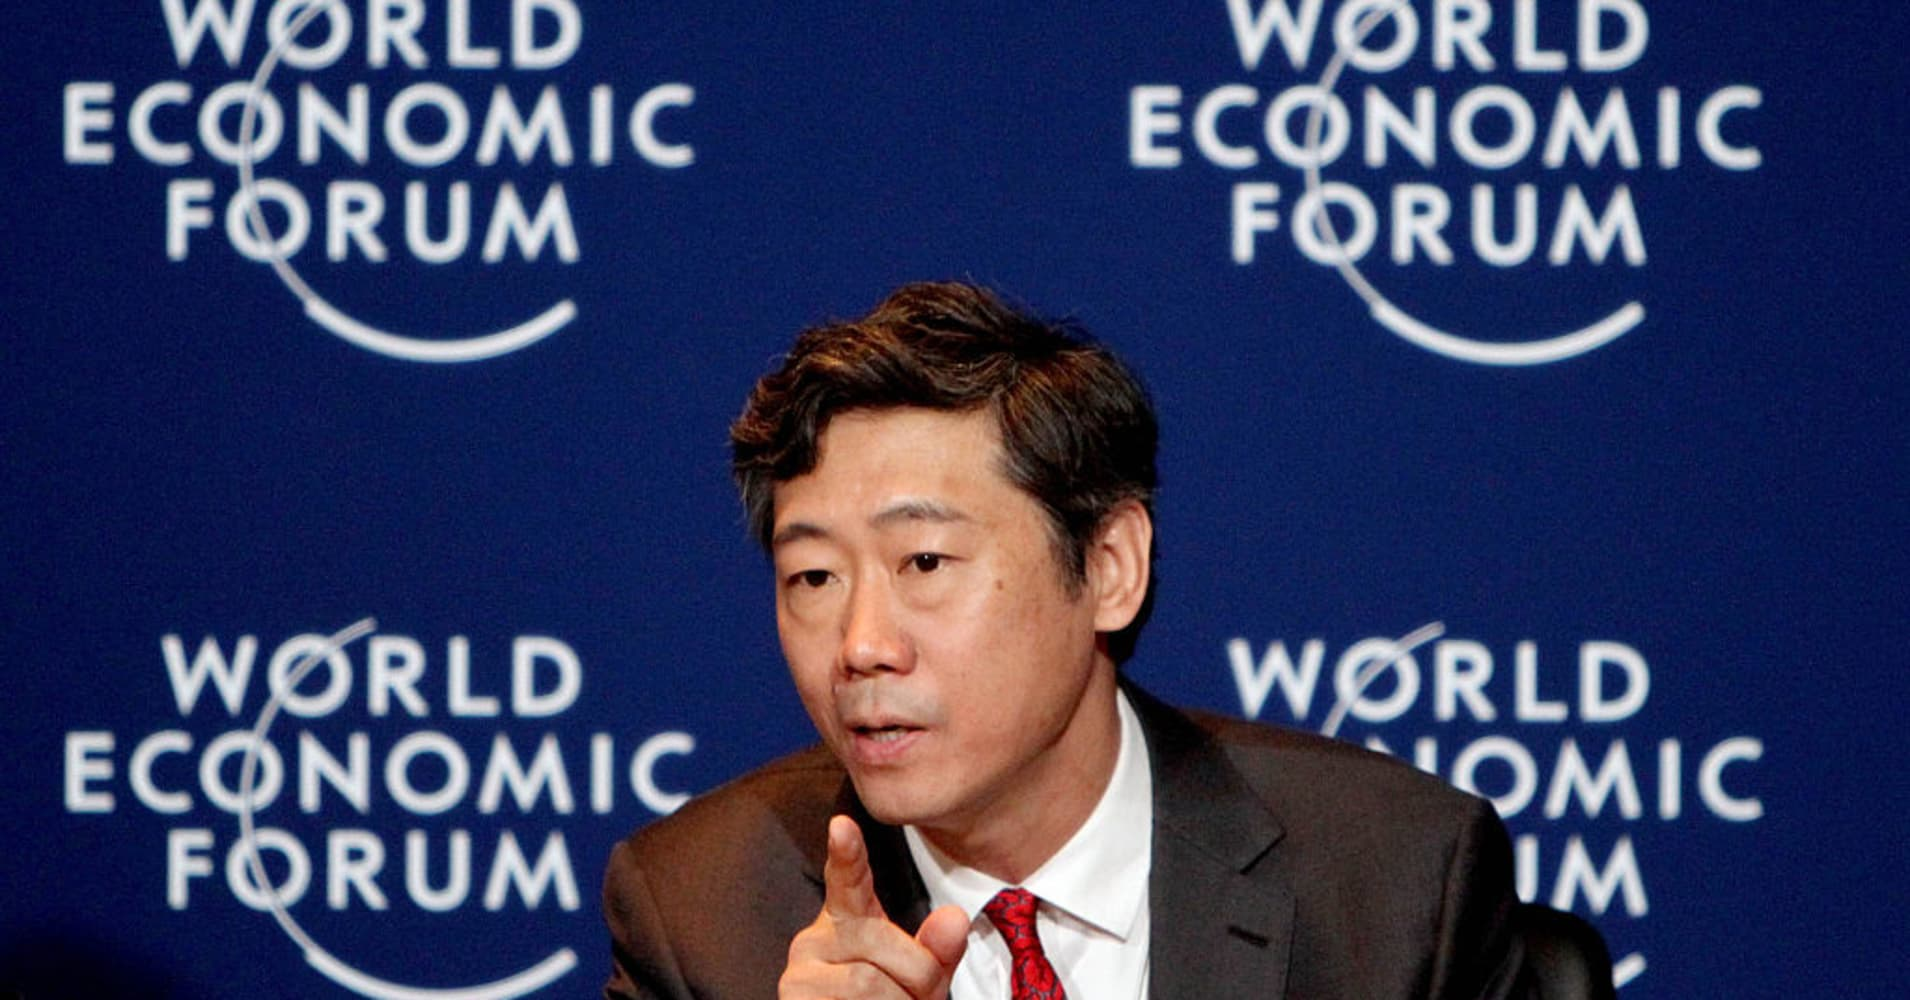 China growth will accelerate as it gets leaders who aren't scared: Former PBOC adviser